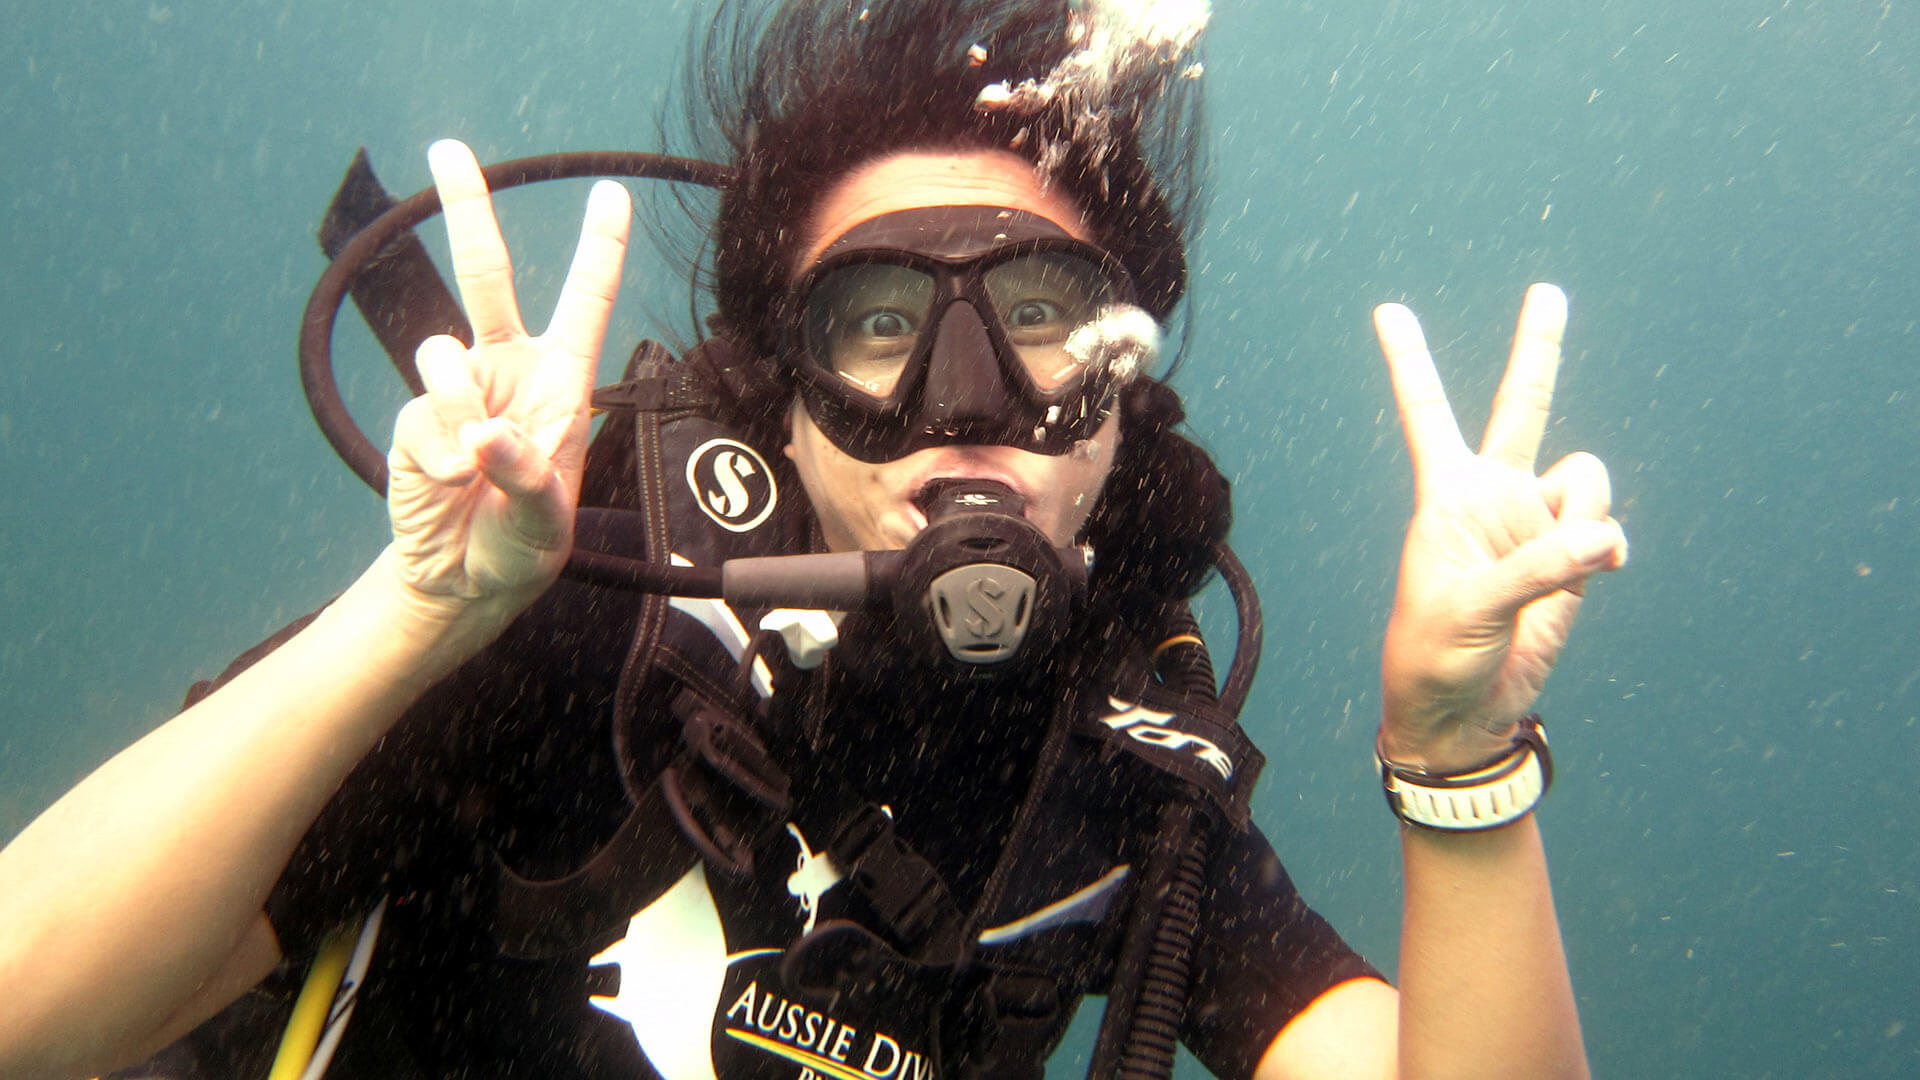 Enjoying Scuba Diving with Aussie Divers